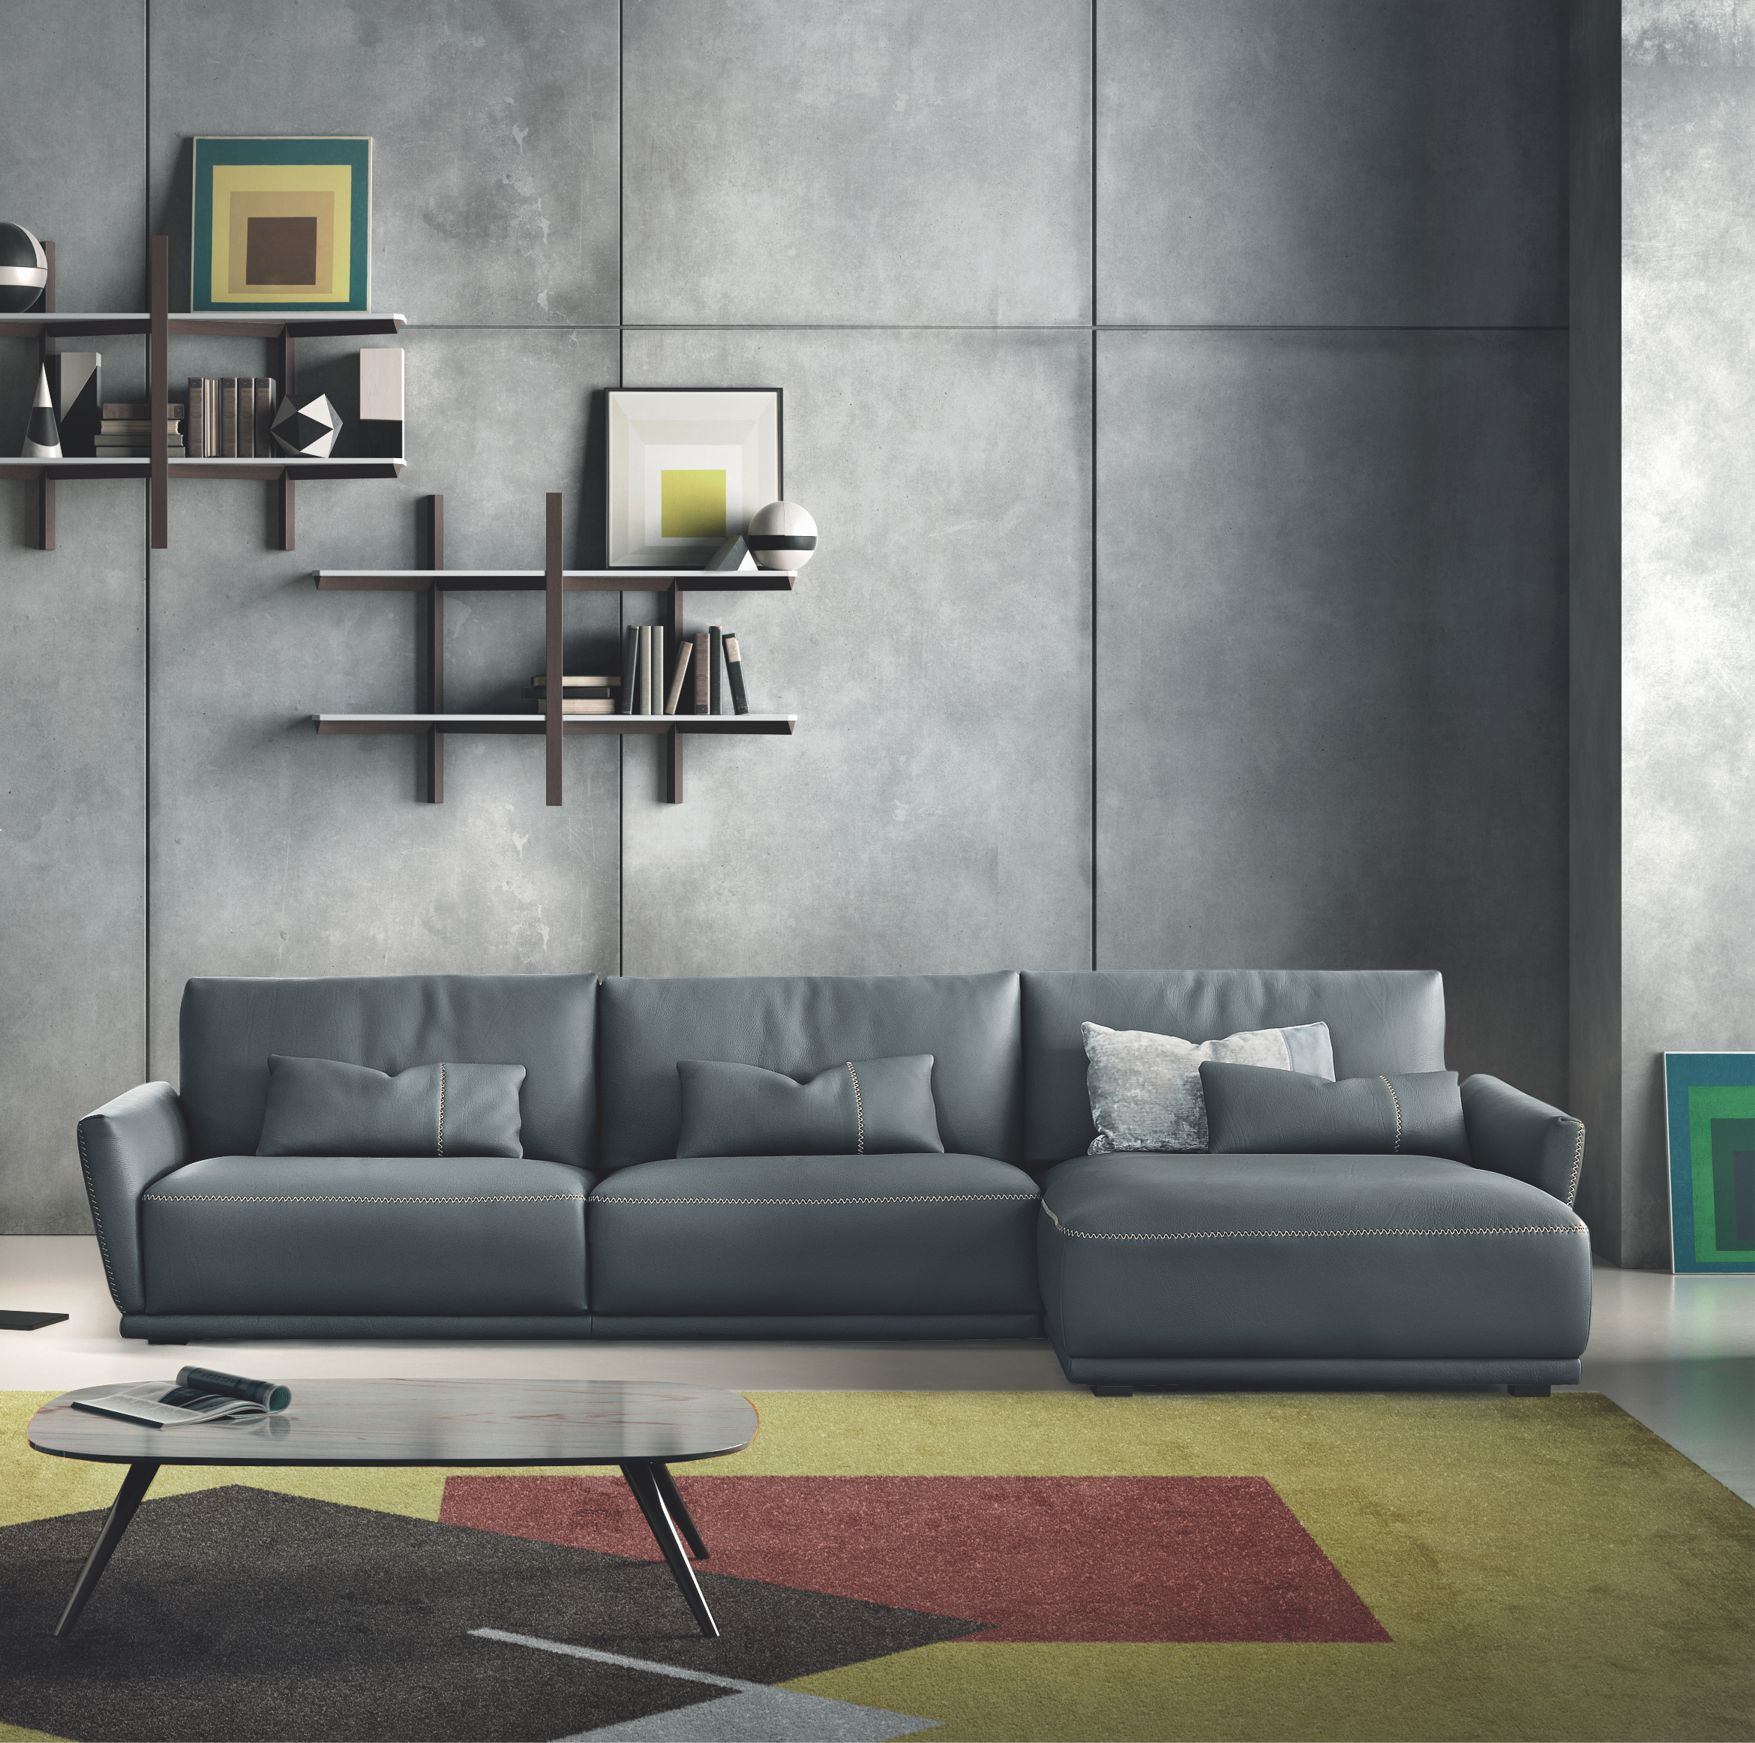 Contemporary Sectional: Victor Modern Sofa Sectional By Gamma Arredamenti, Italy